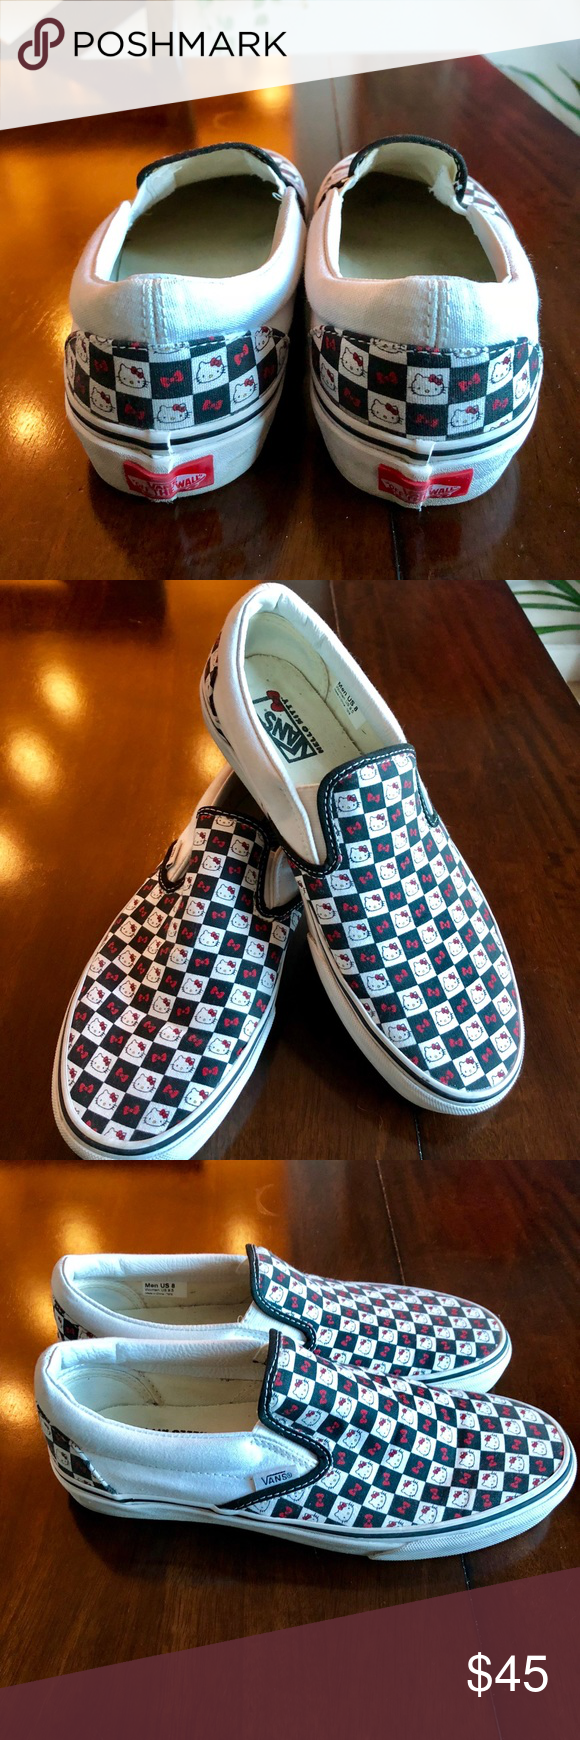 5c9eda889f4 Hello Kitty Checkered Vans Slips Limited Edition! Limit edition Hello Kitty  Vans! Barely worn. Great condition! Women size 9.5 Men size 8 Vans Shoes ...